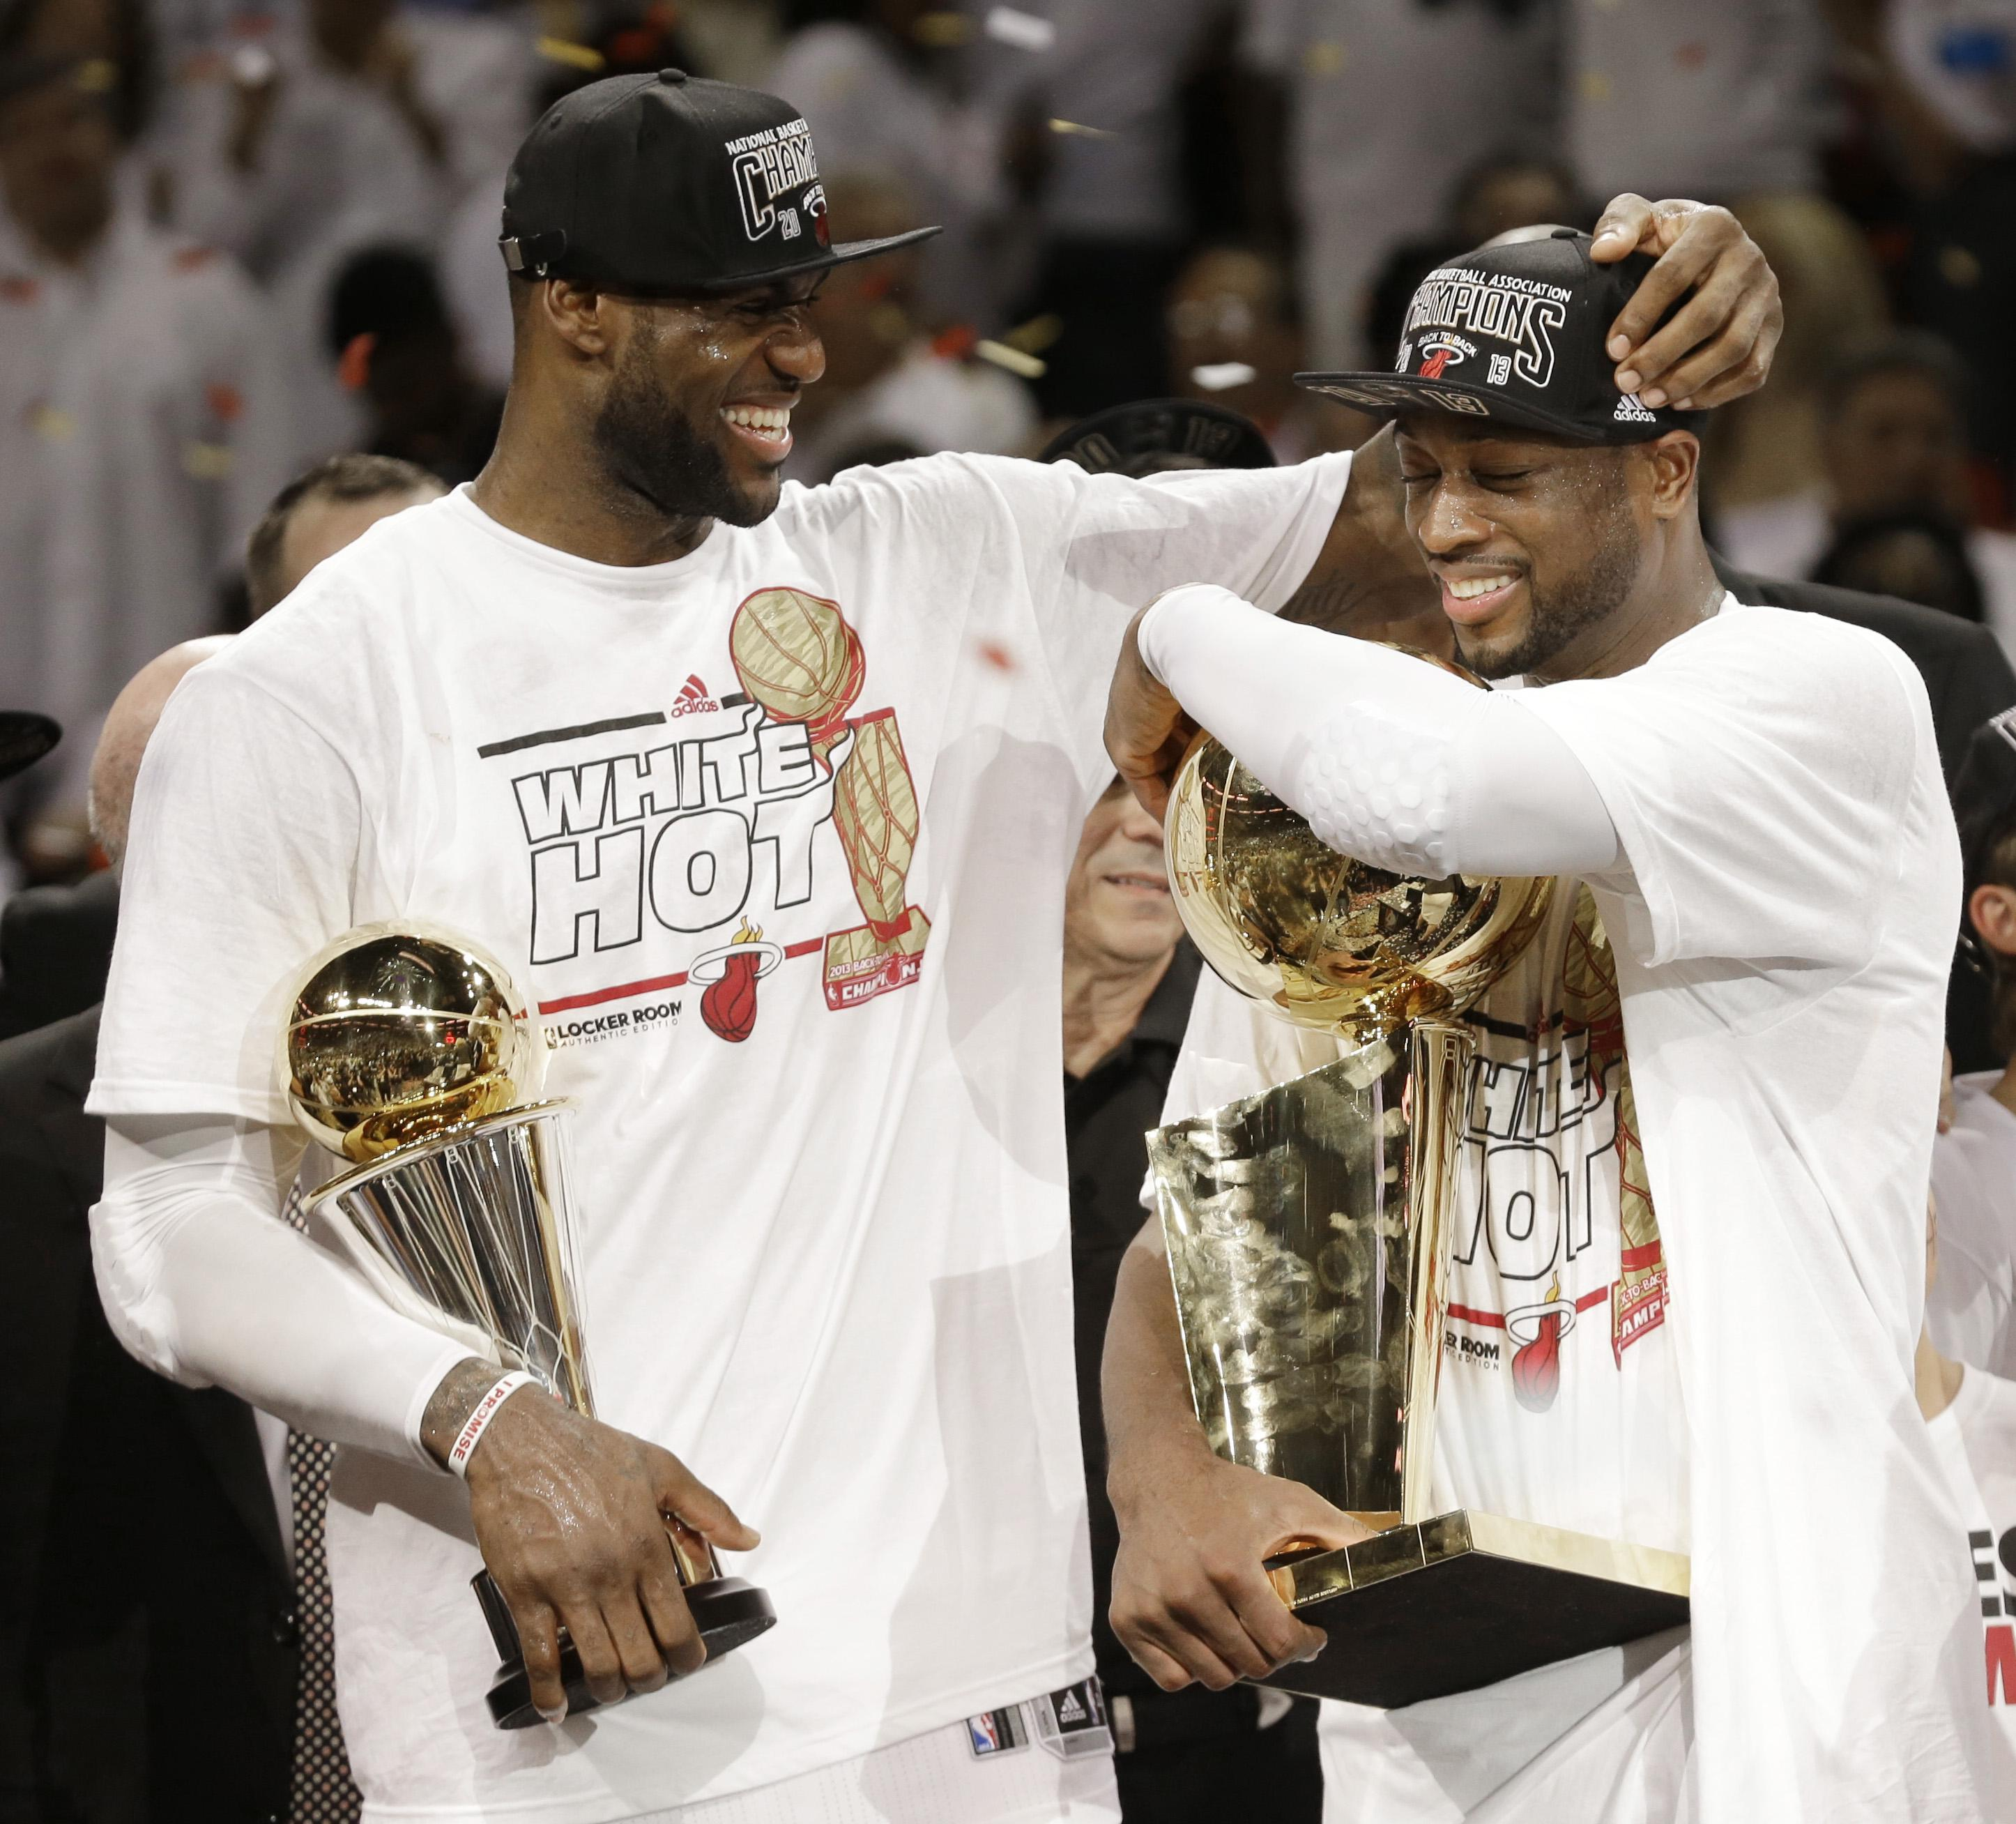 LeBron first left Cleveland in 2010 to join the Miami Heat - he won two titles in four years alongside Dwyane Wade